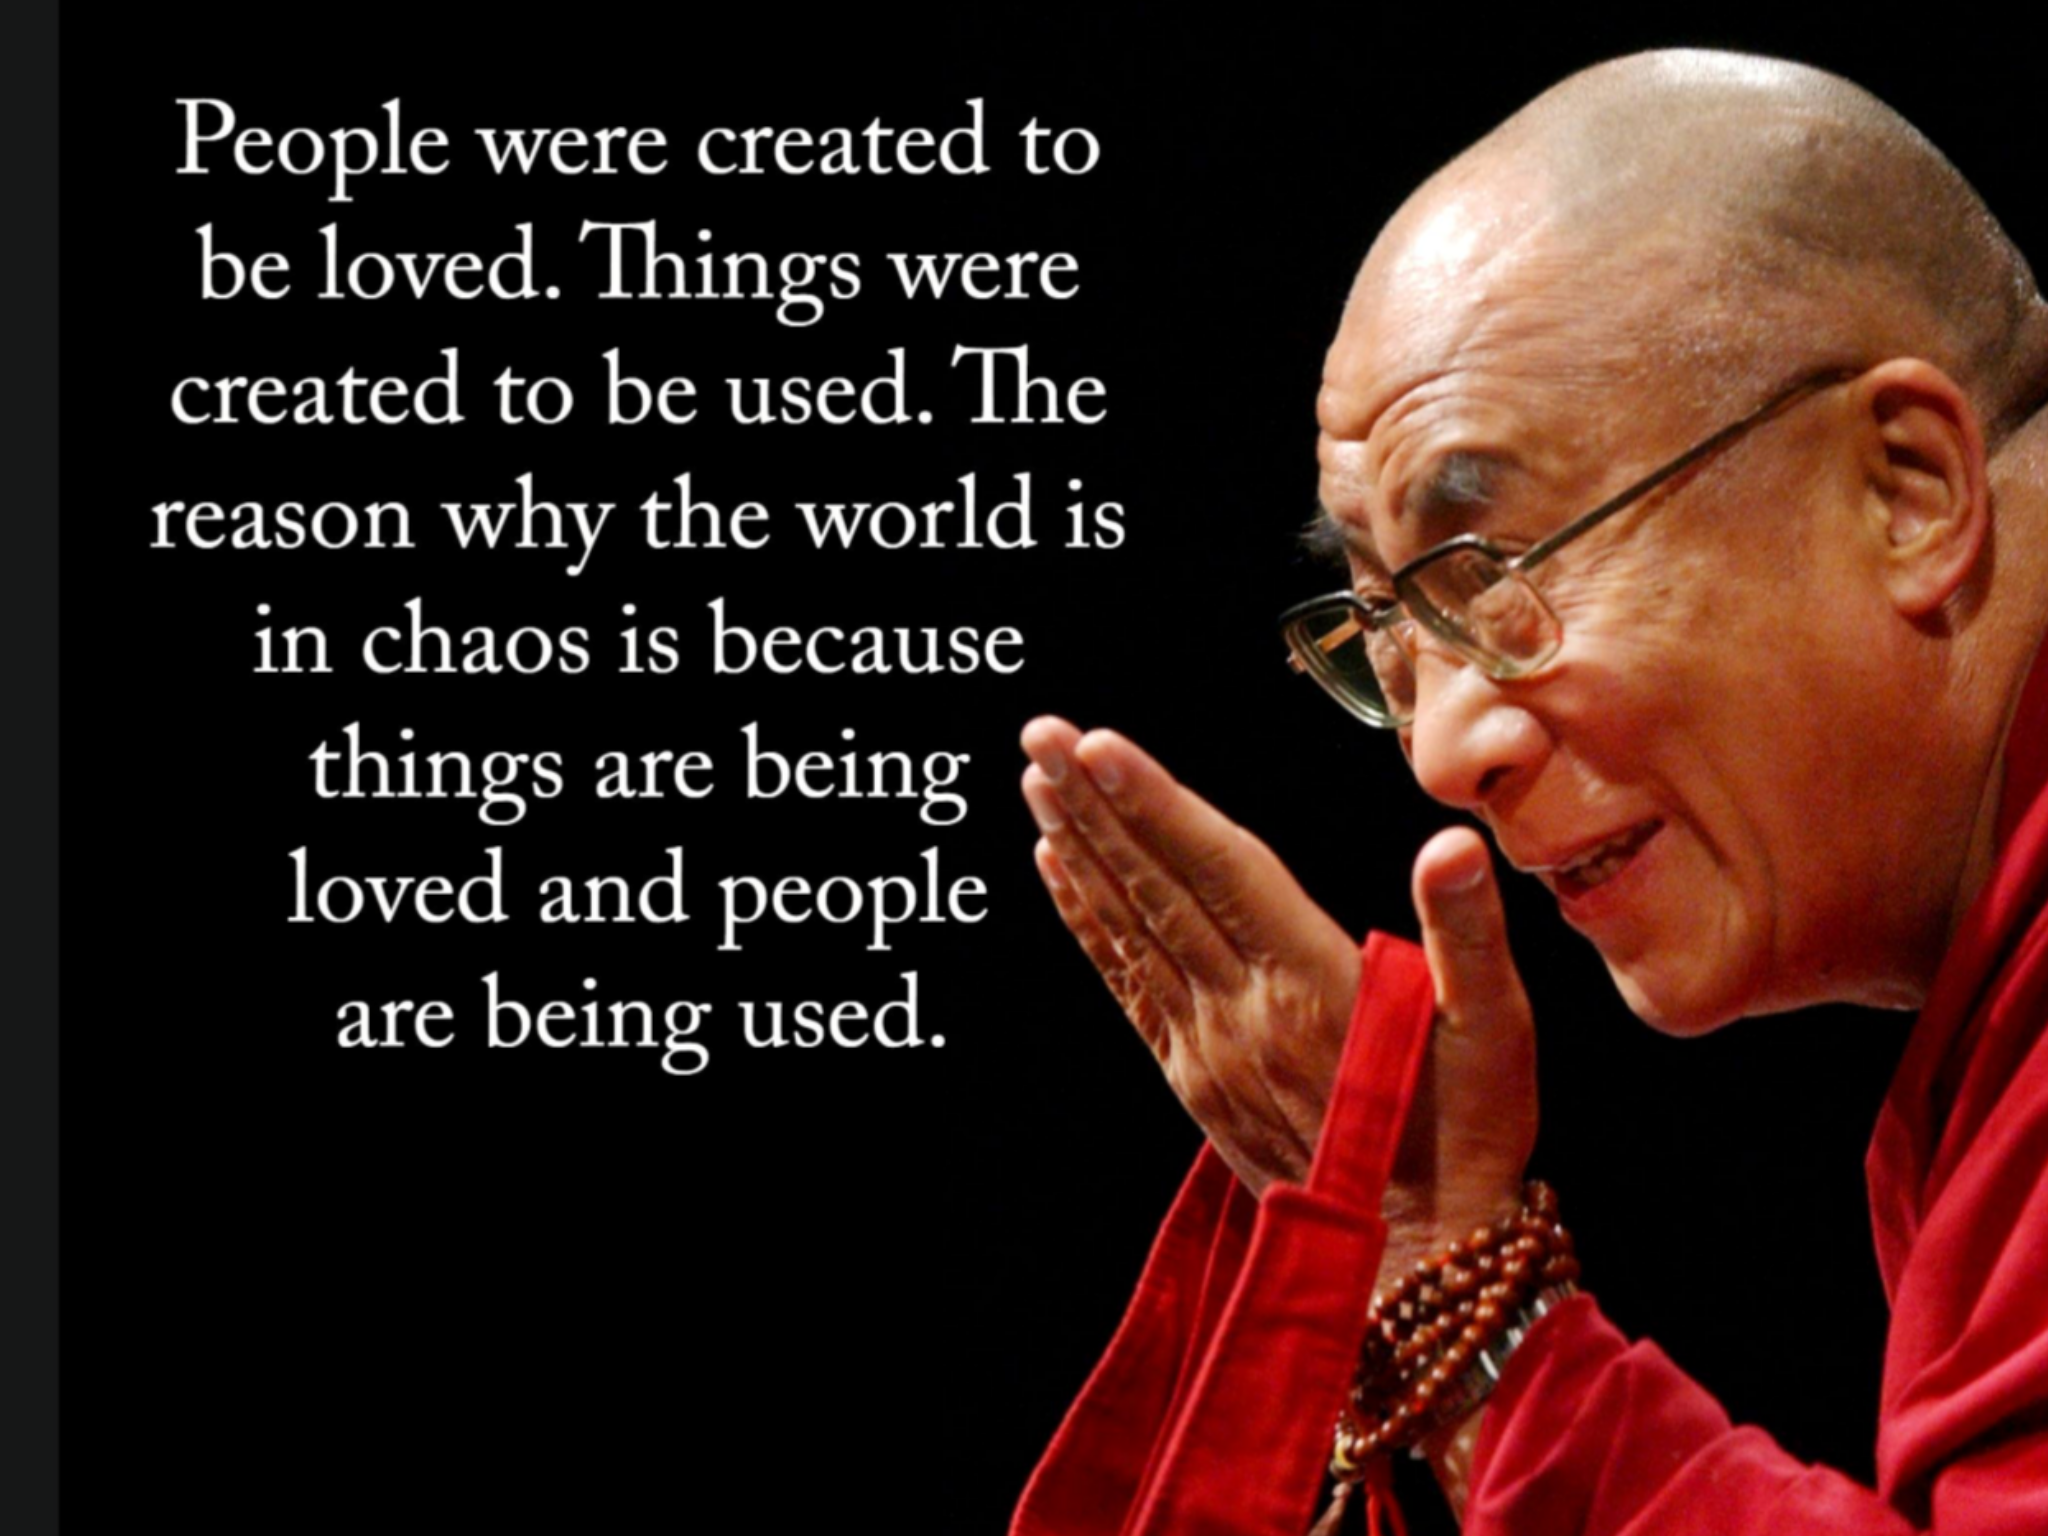 Dalai Lama Especially In Business Today People Are Seen As Just